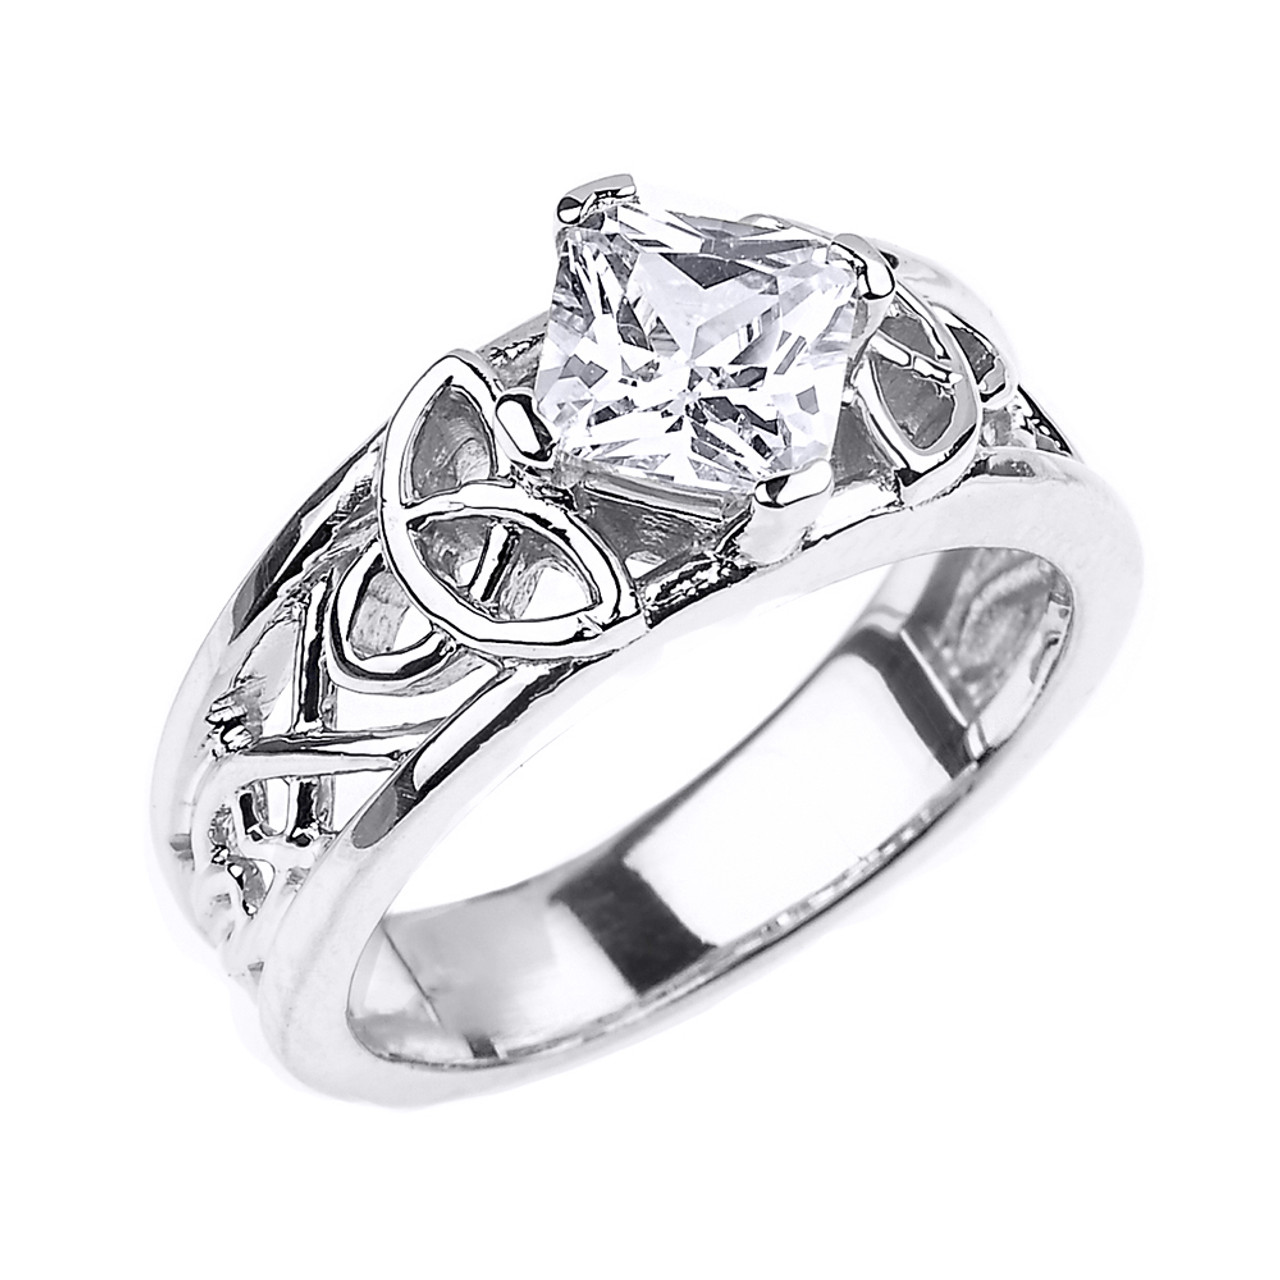 ring rings bling size wedding jewelry silver set w cl sterling cz sterlingsilver engagement